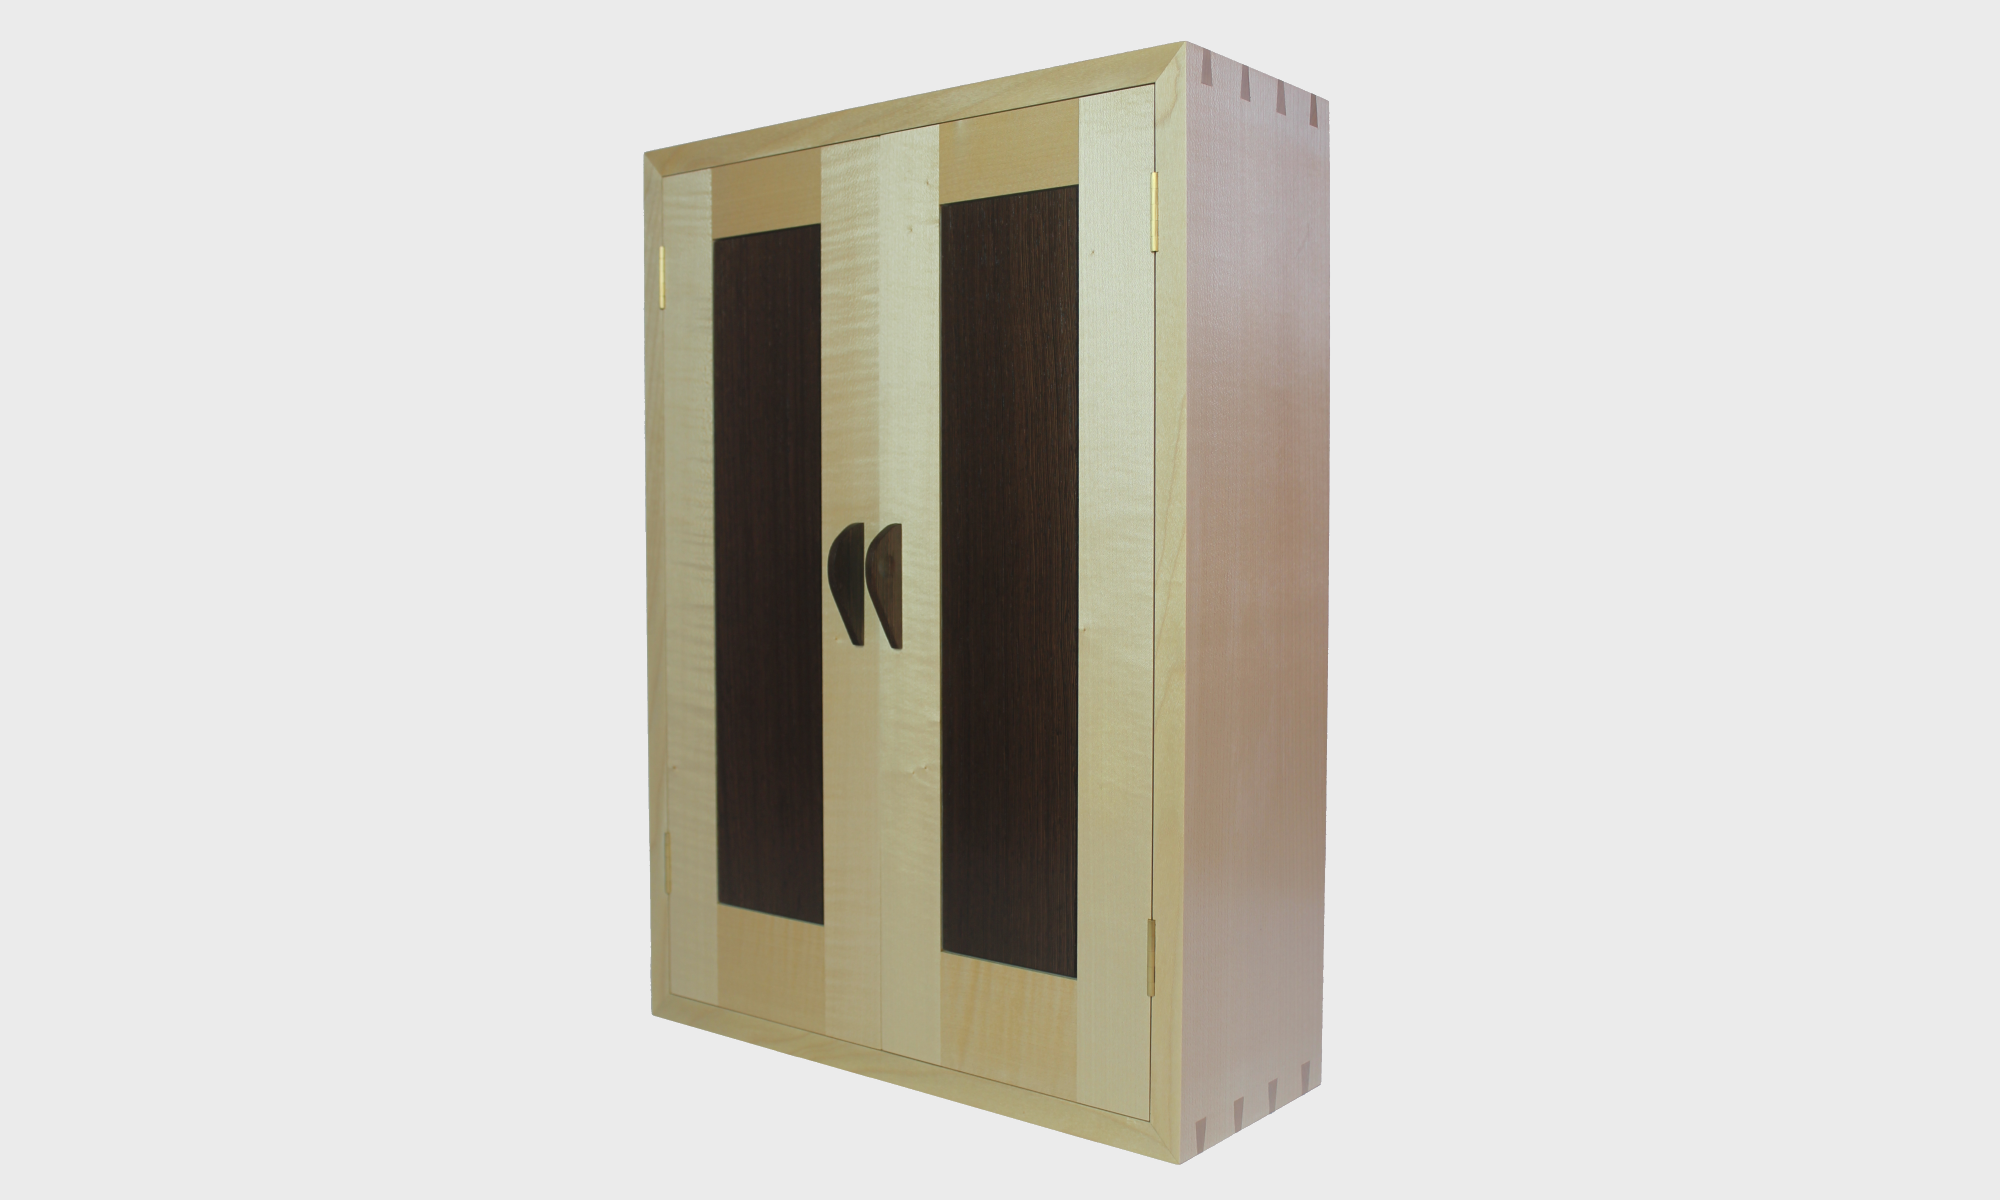 image of bespoke handcrafted wall cabinet